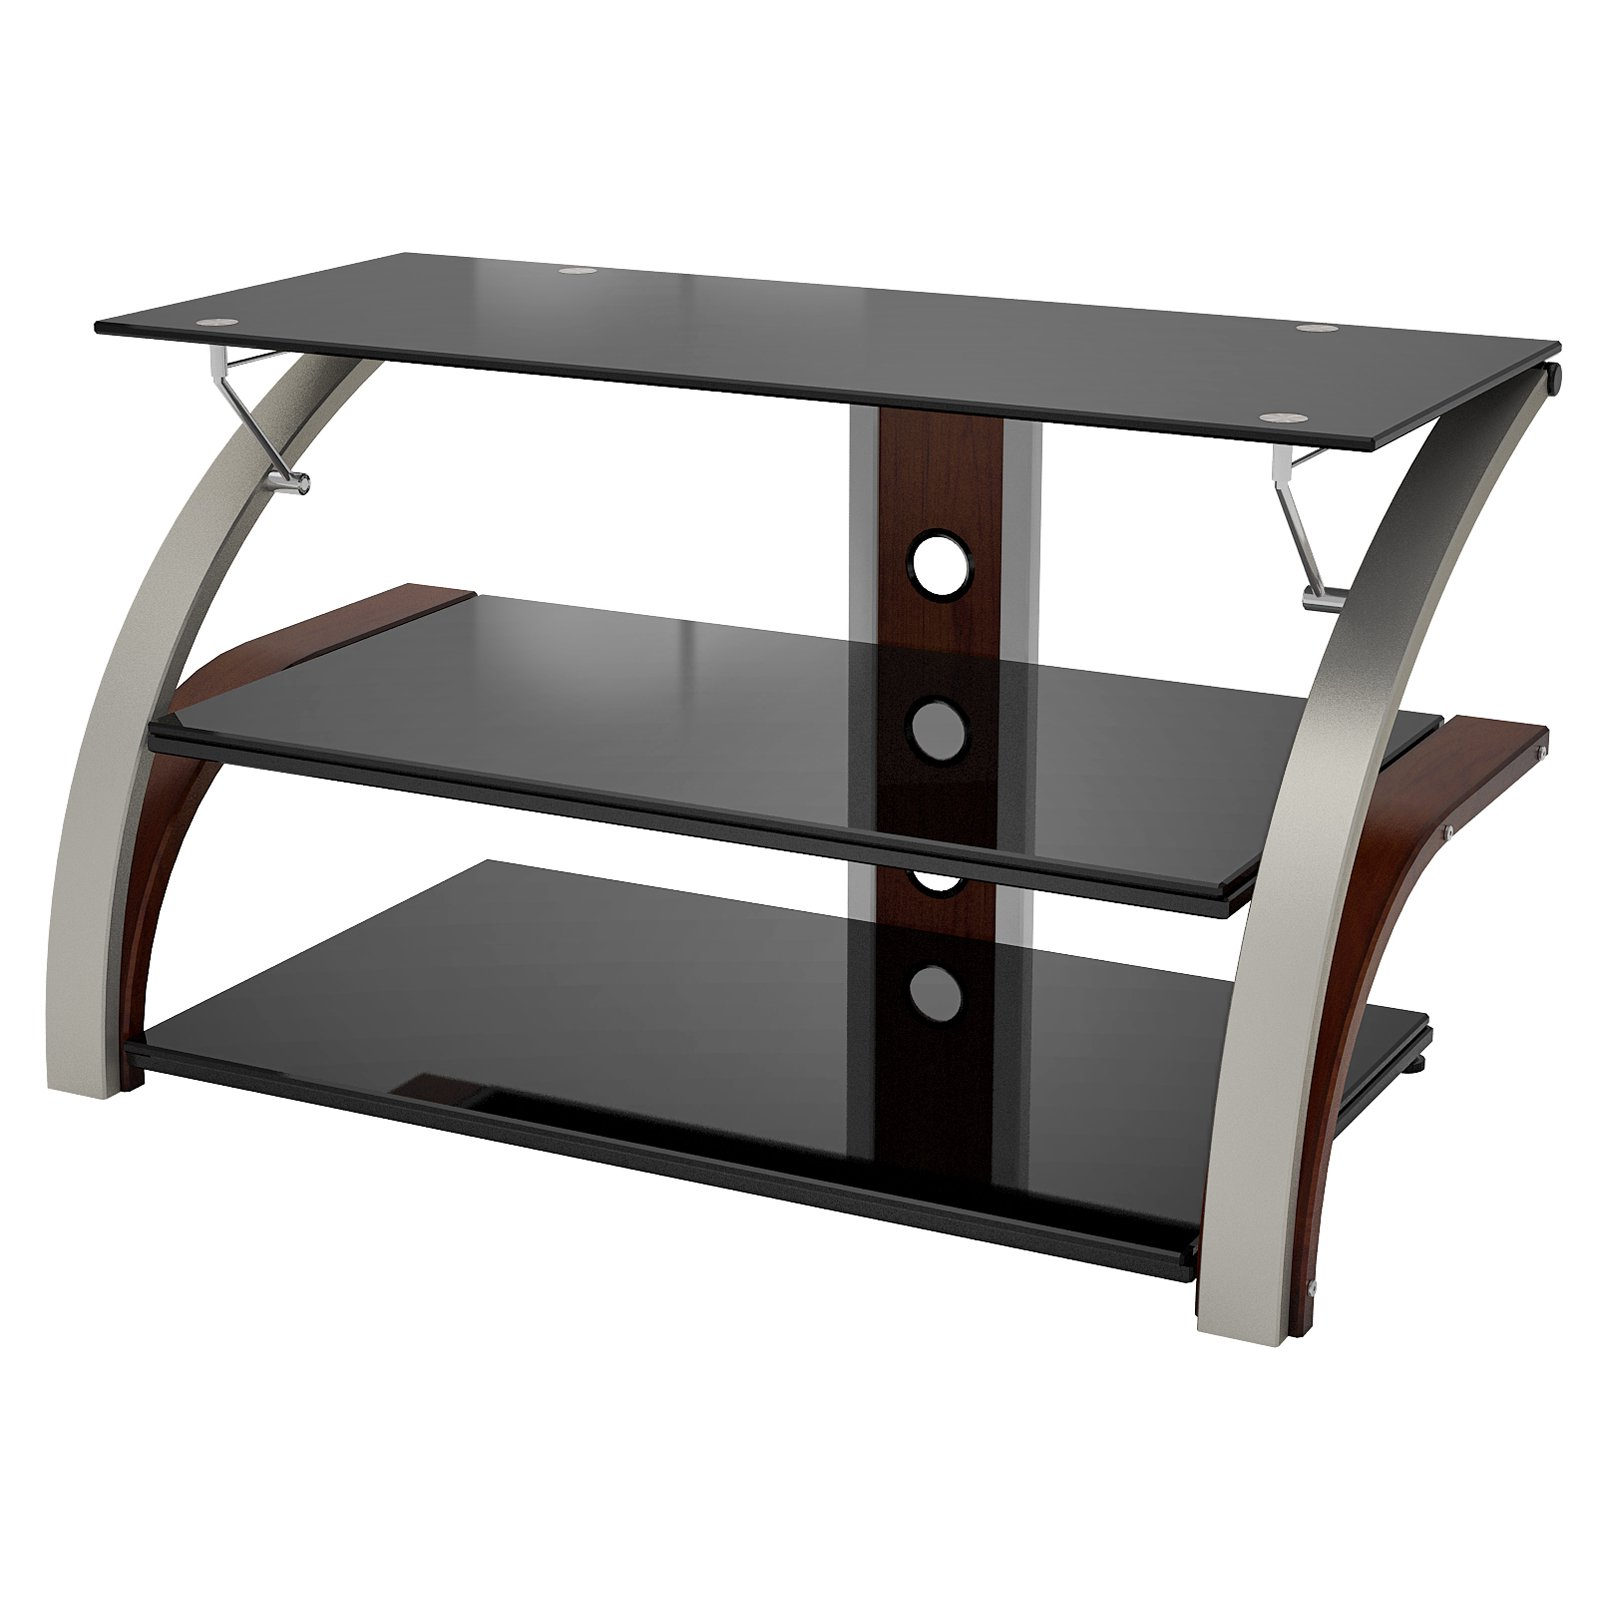 Z-Line Elecktra TV Stand with Optional Mounting Kit - Cherry